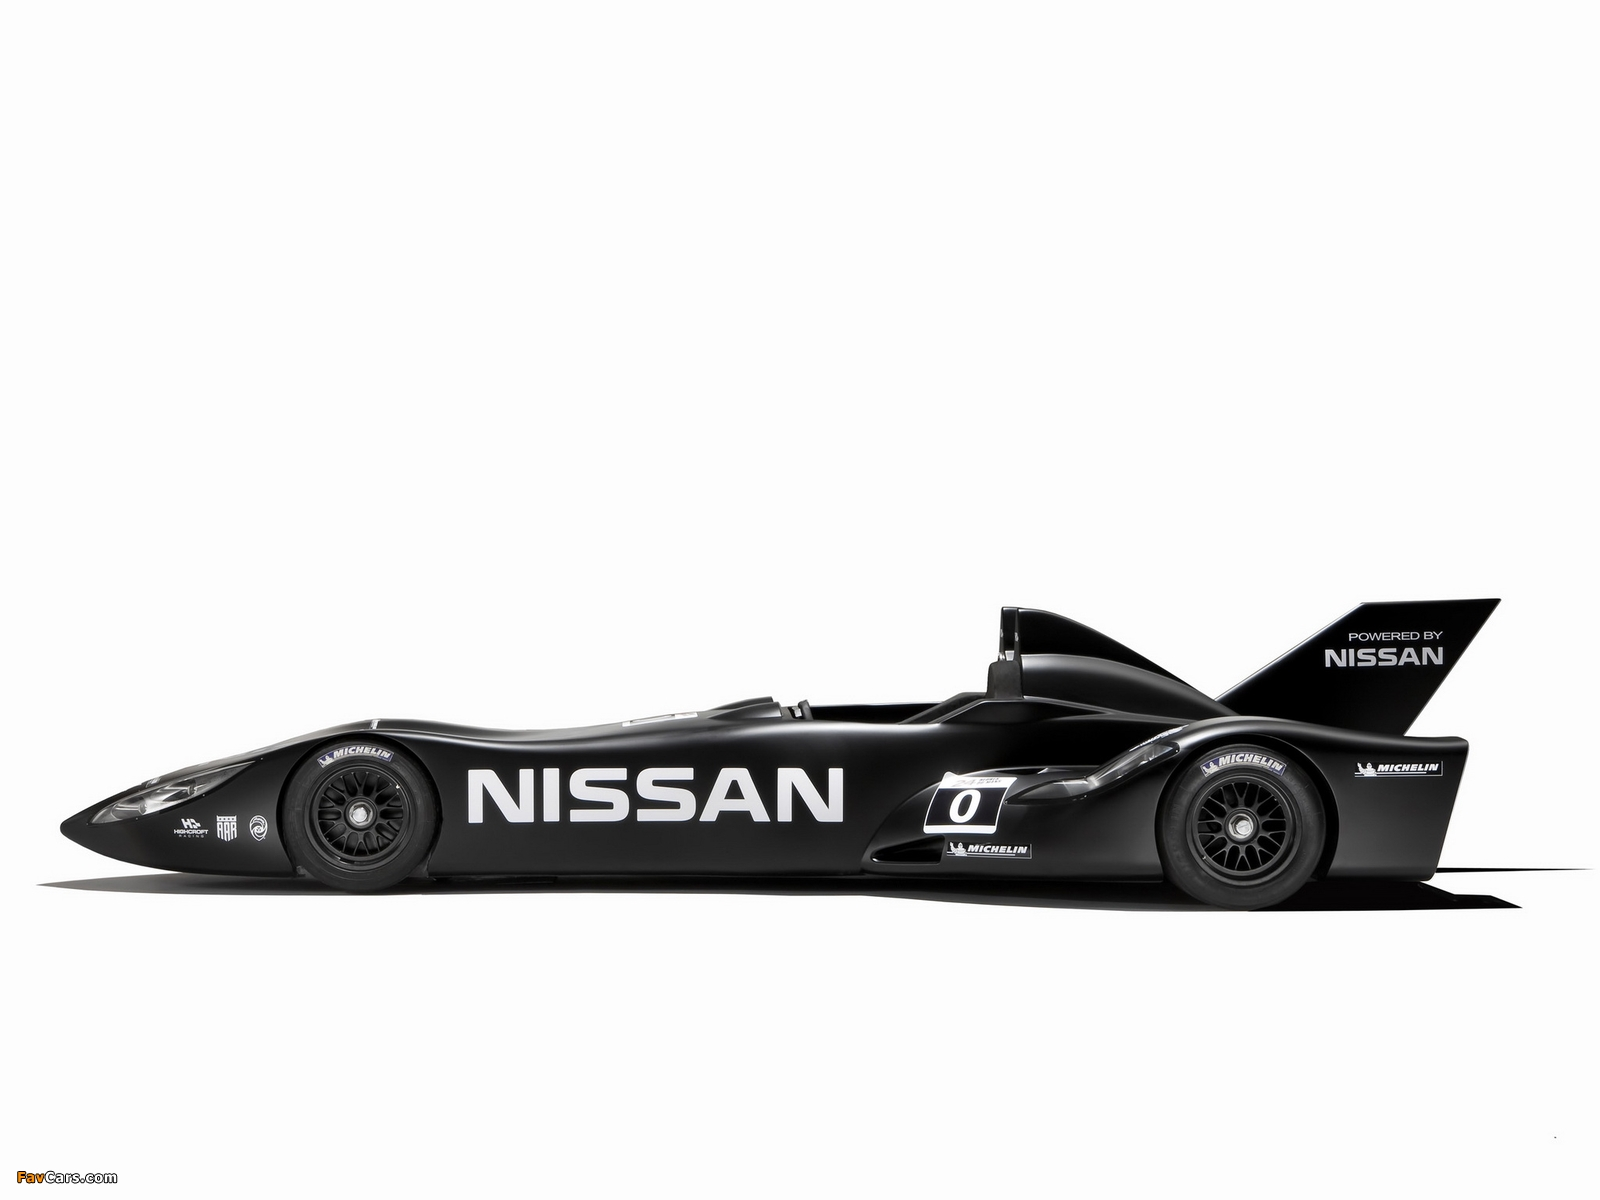 Nissan DeltaWing Experimental Race Car 2012 wallpapers (1600 x 1200)